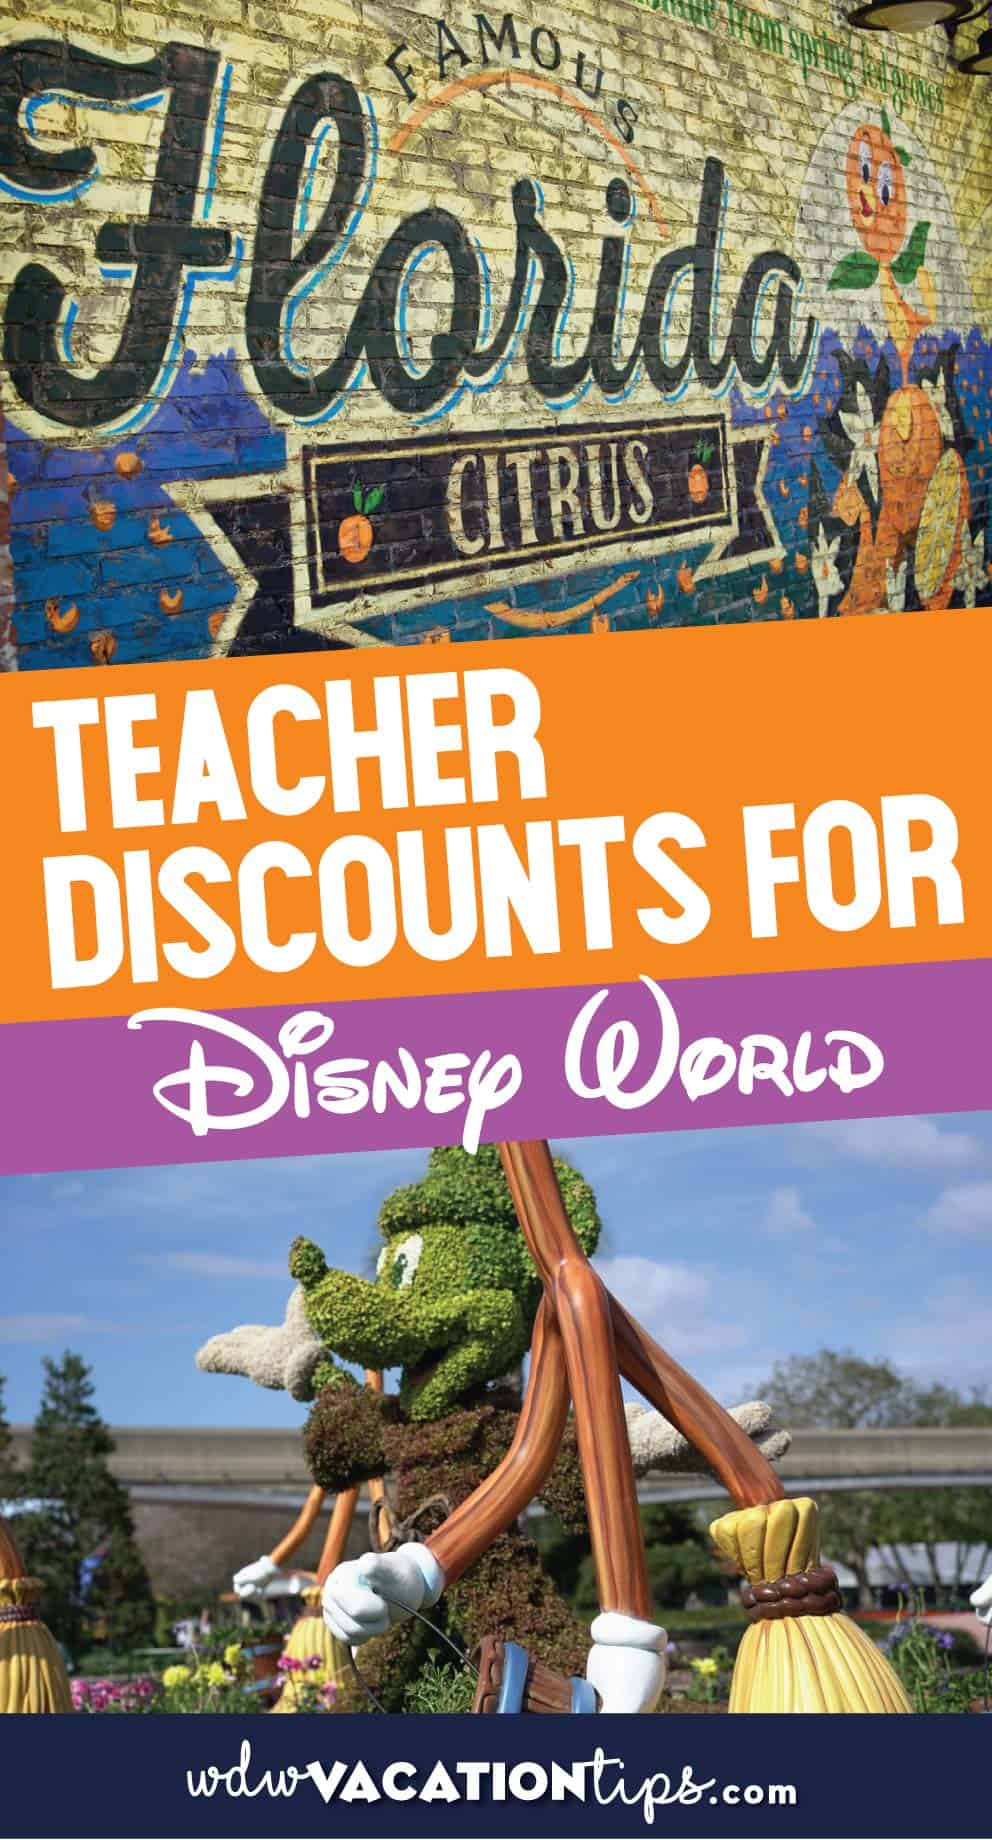 Teacher discounts at Disney World